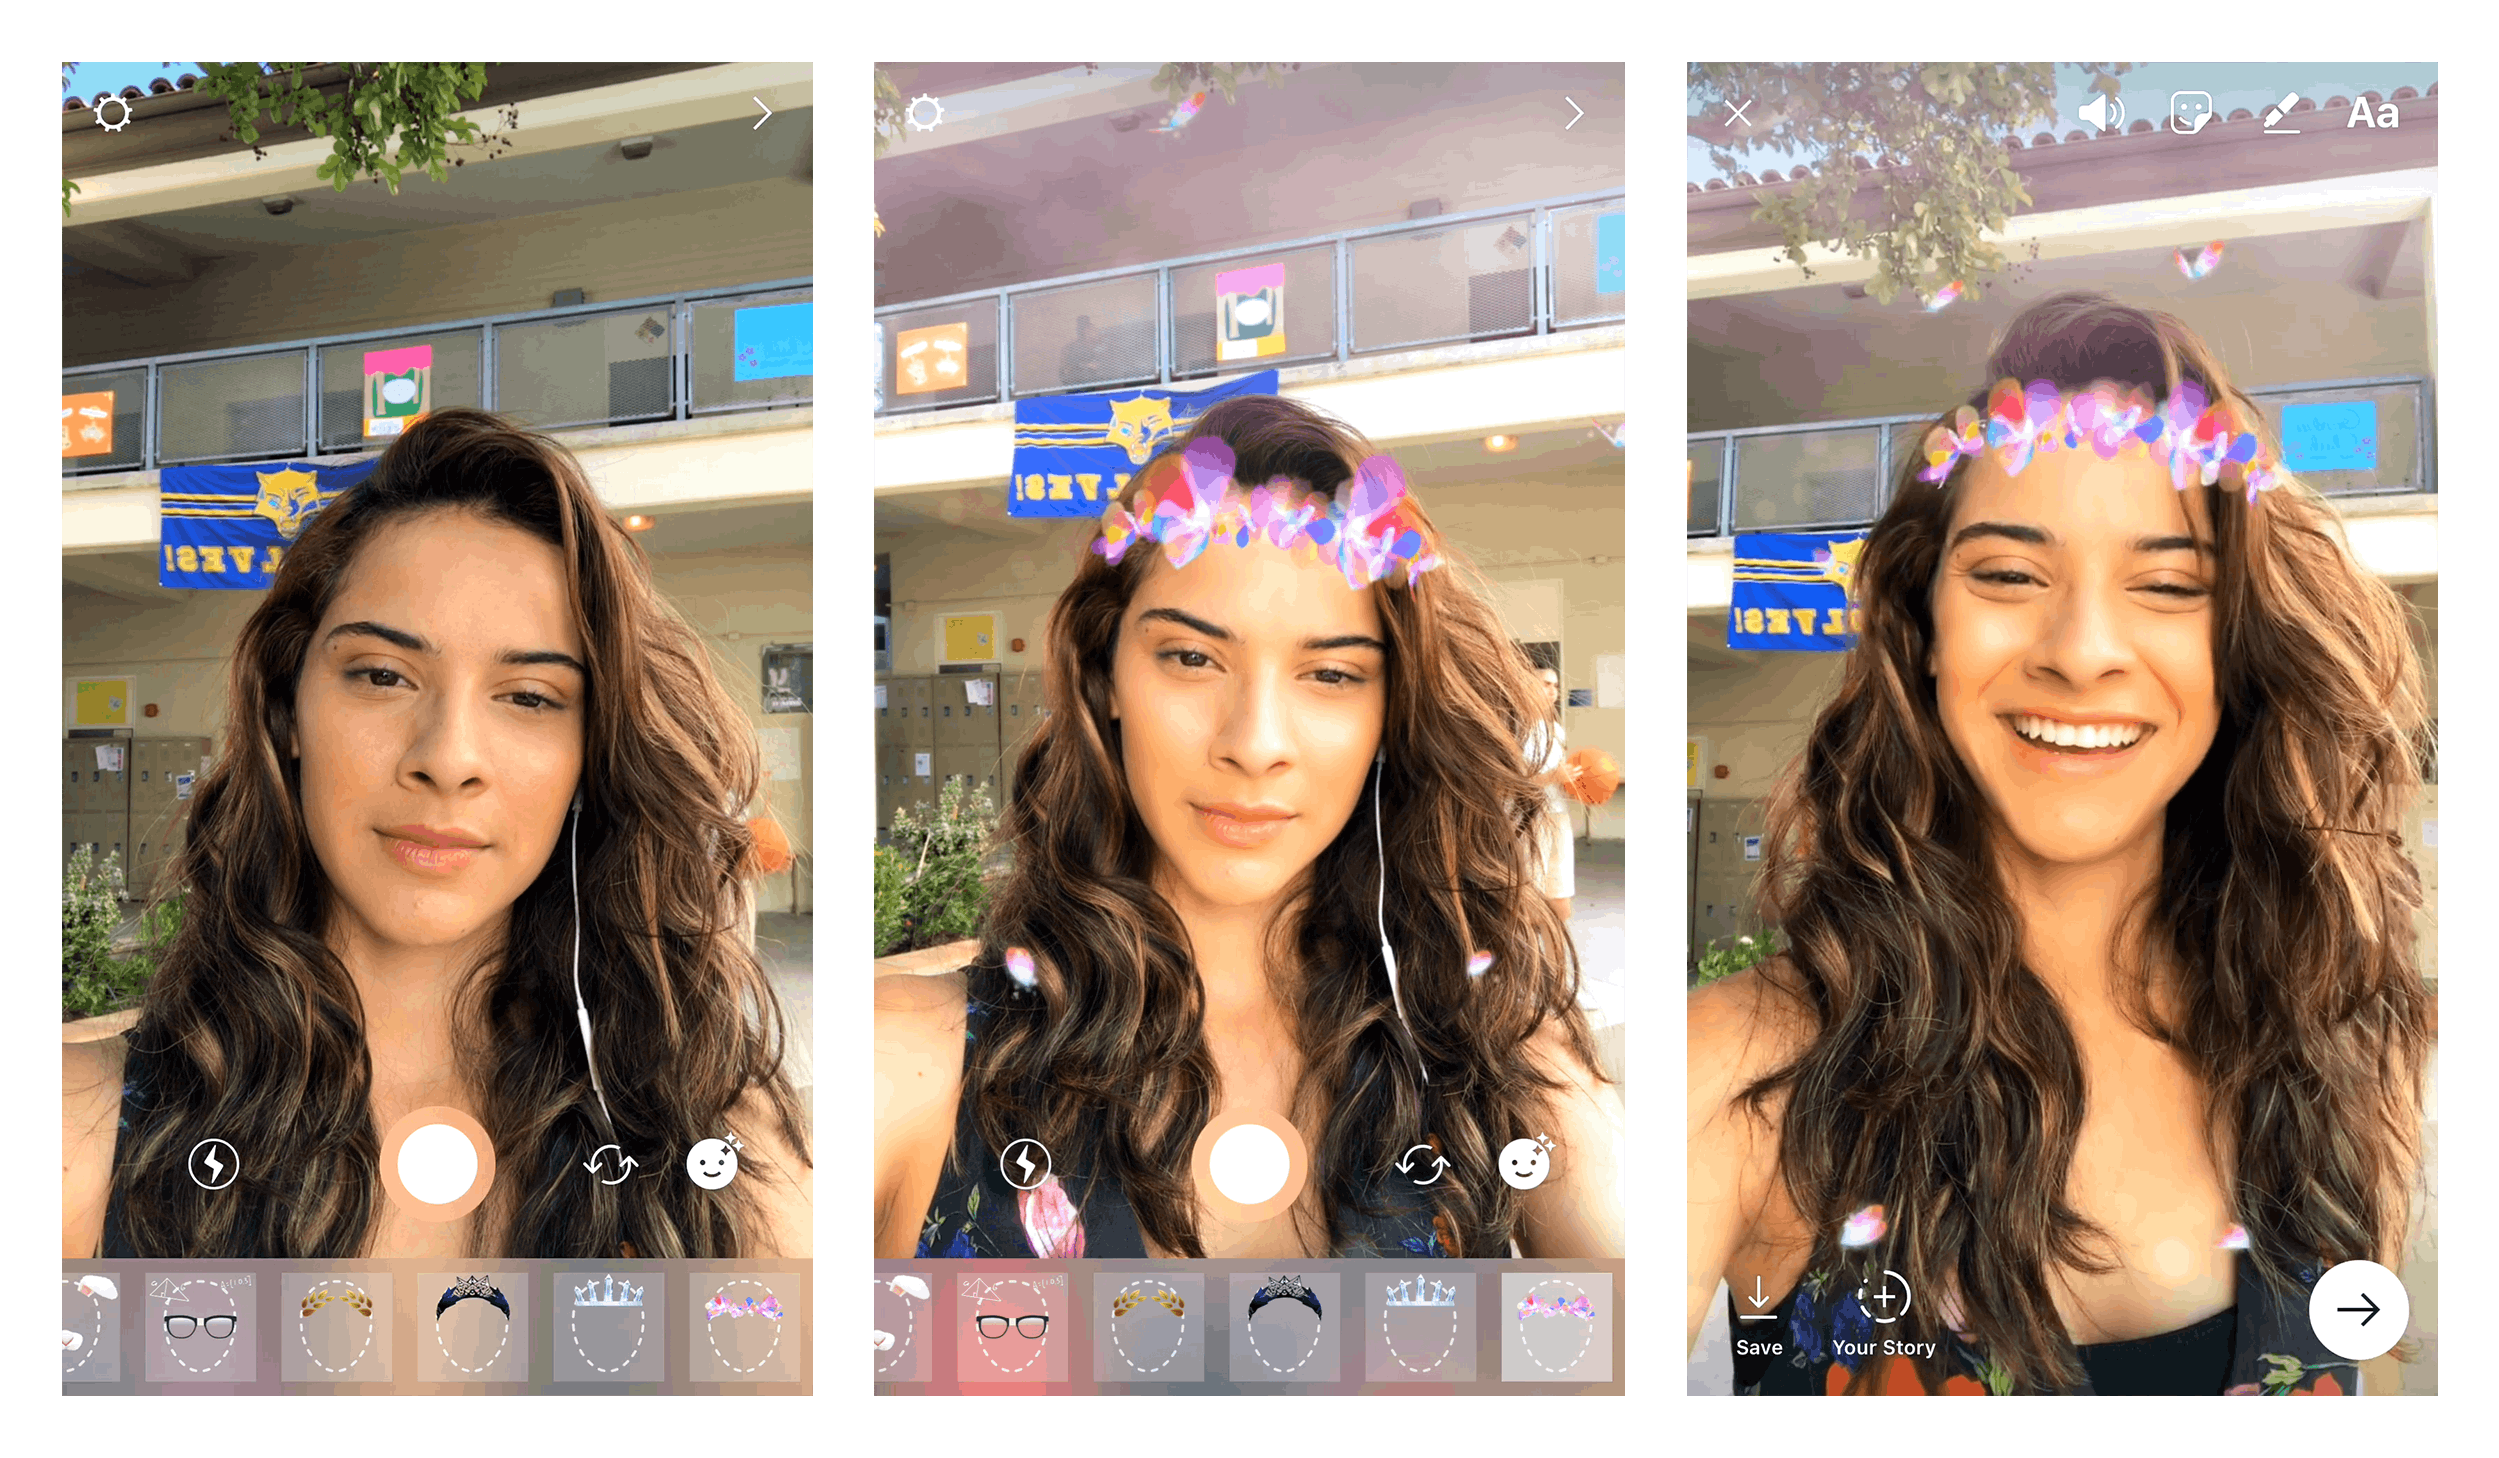 Instagram stories go full Snapchat with new face filters